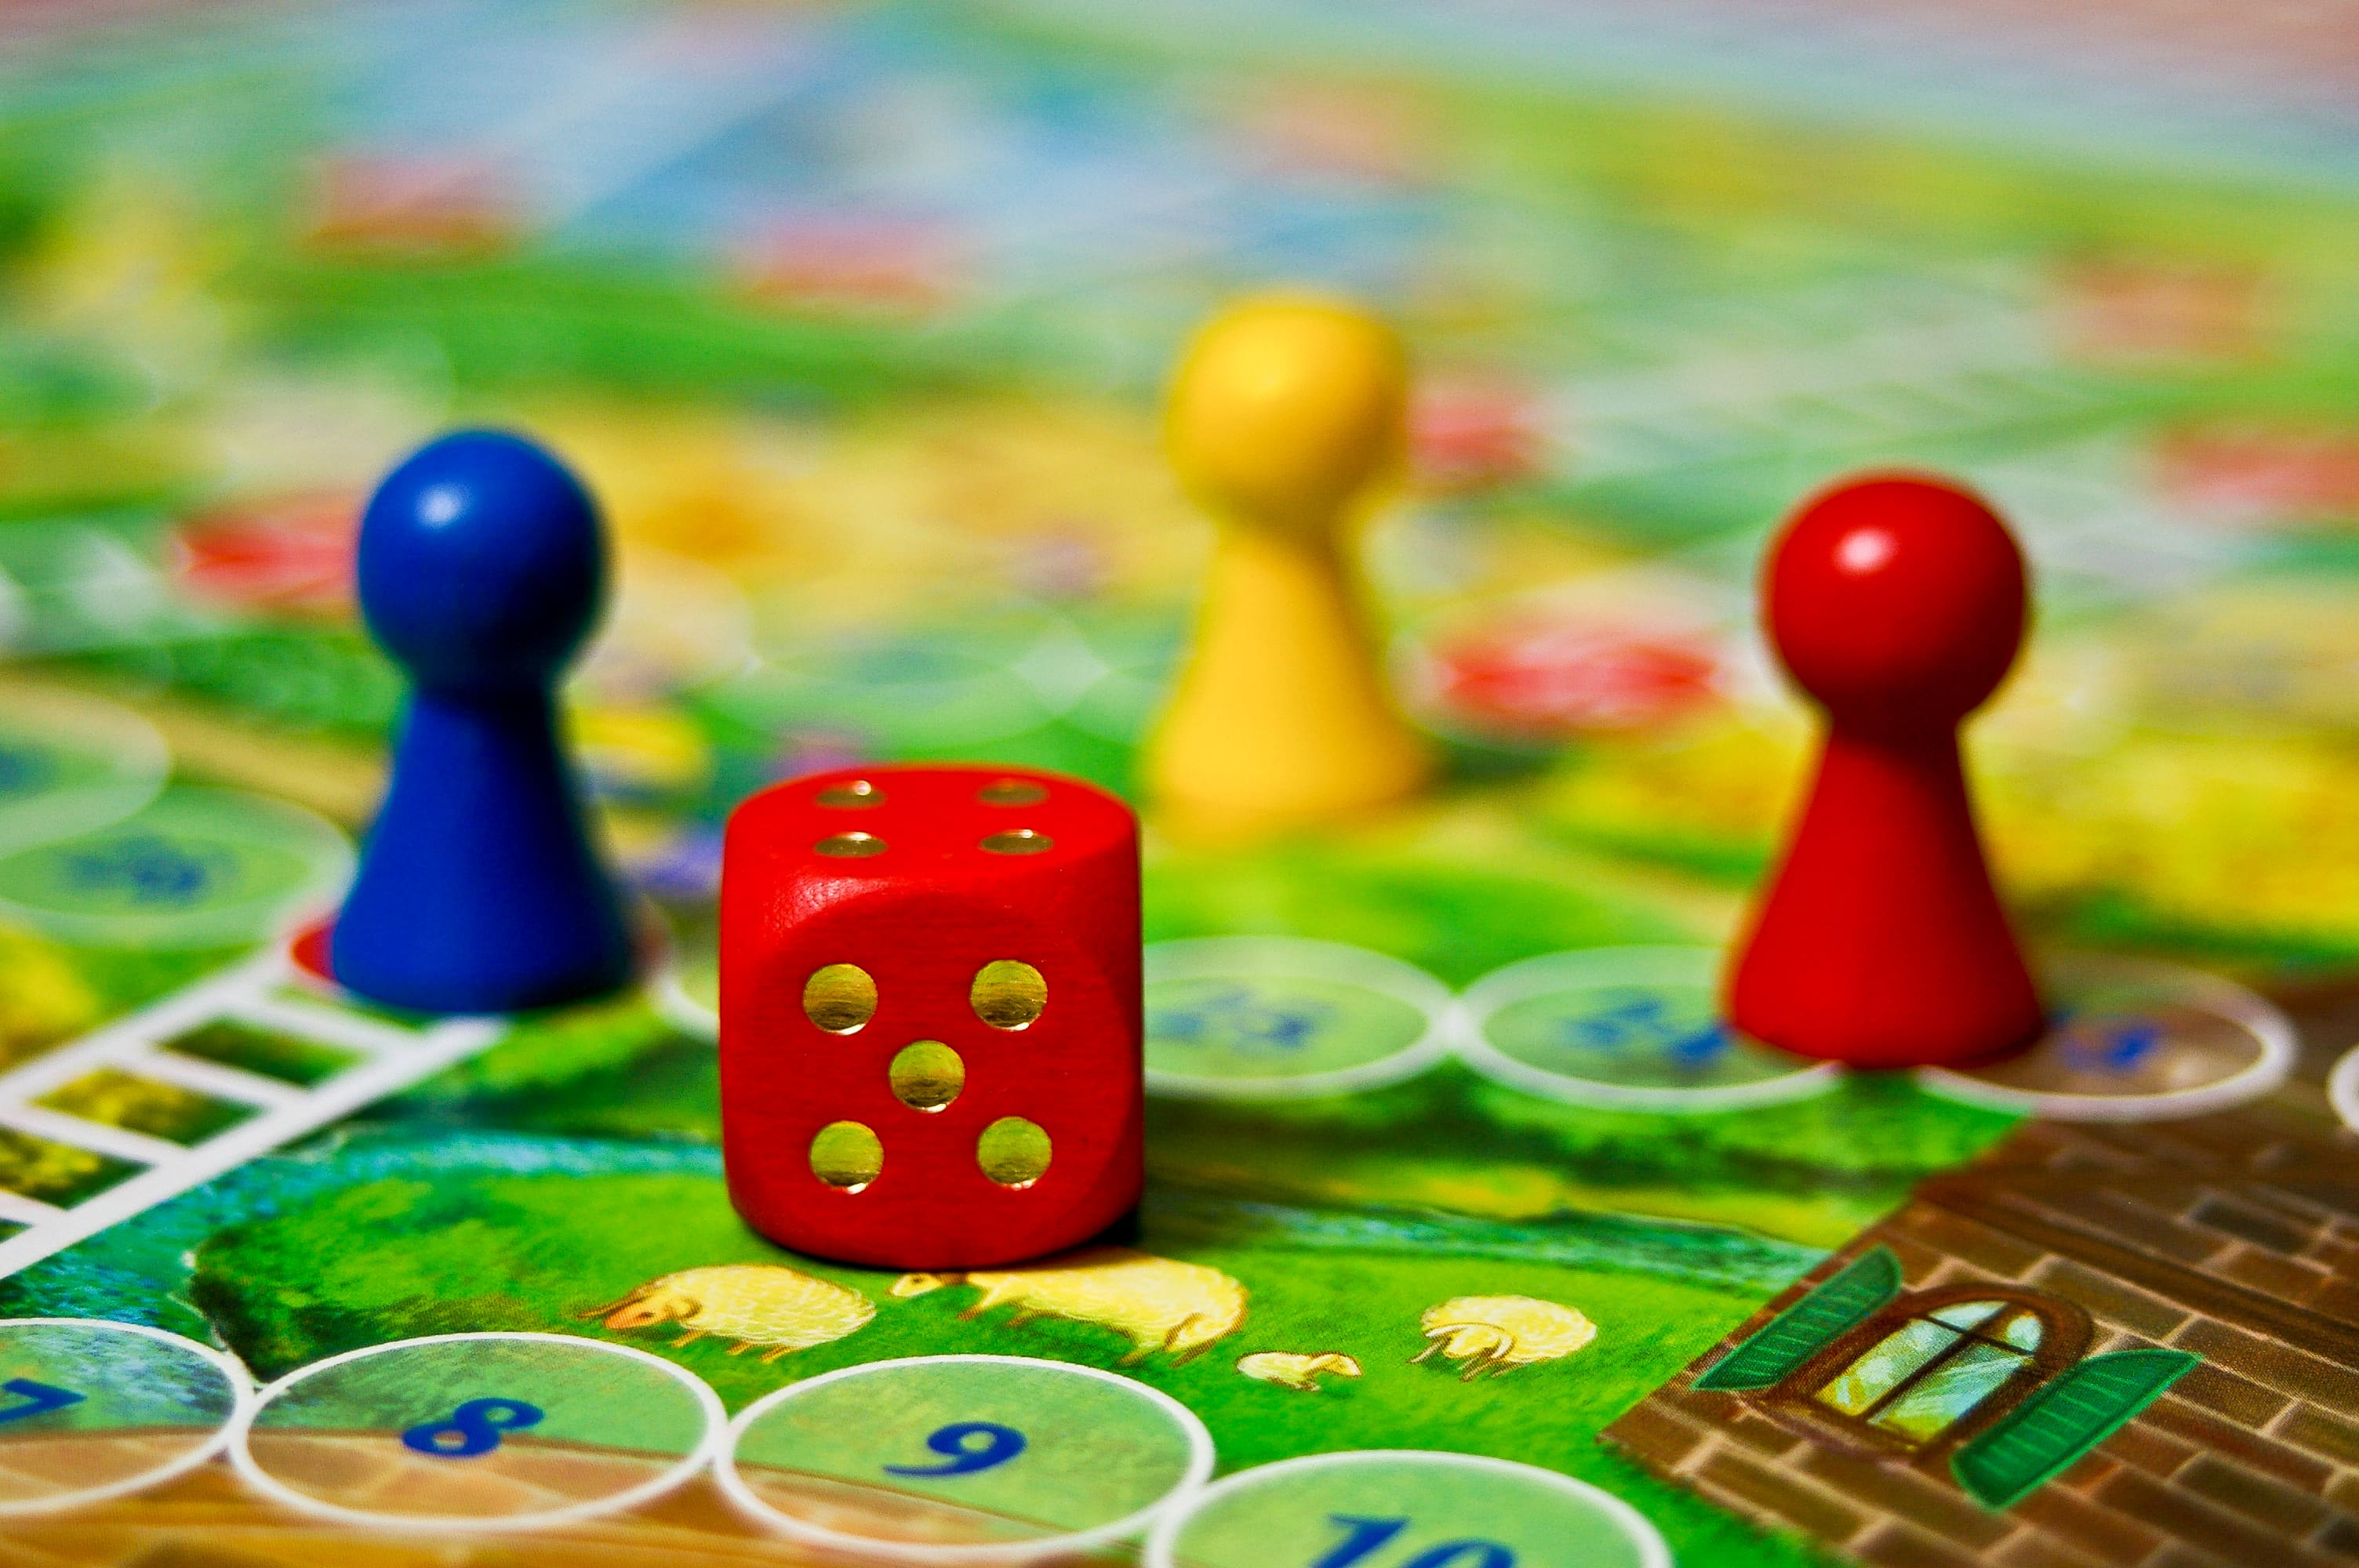 Millennials are driving the board games revival